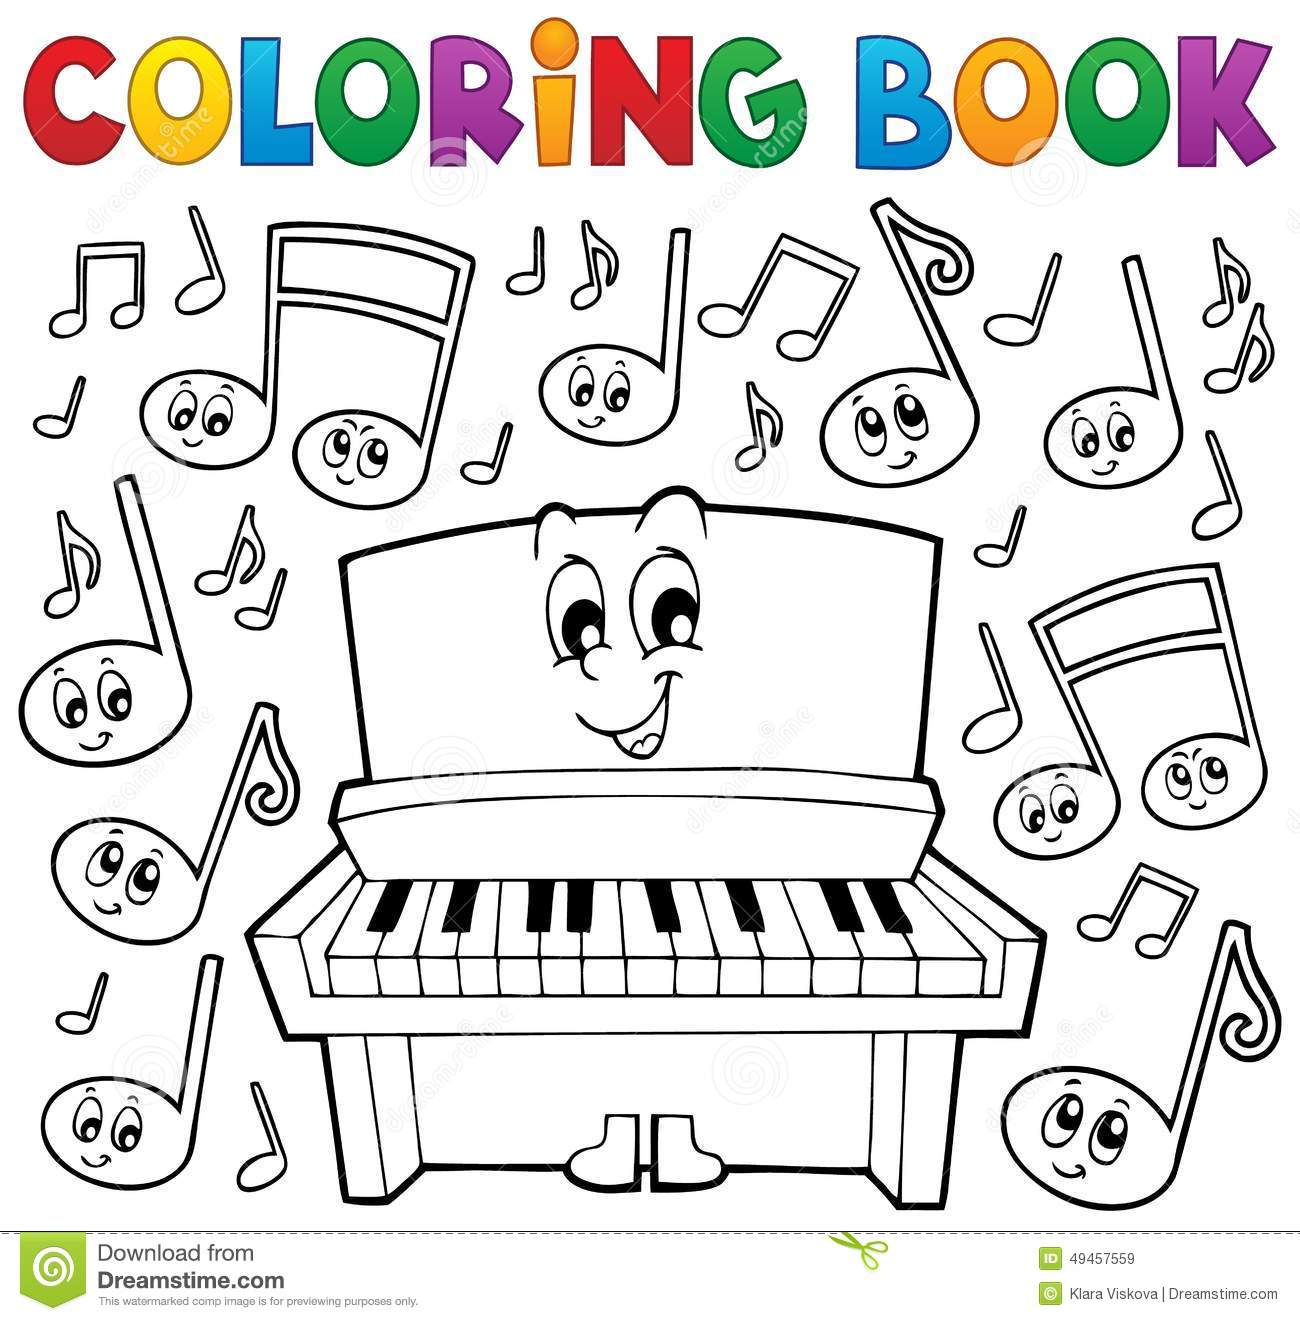 Coloring Book Music Theme Image 1 Stock Vector - Illustration of ...